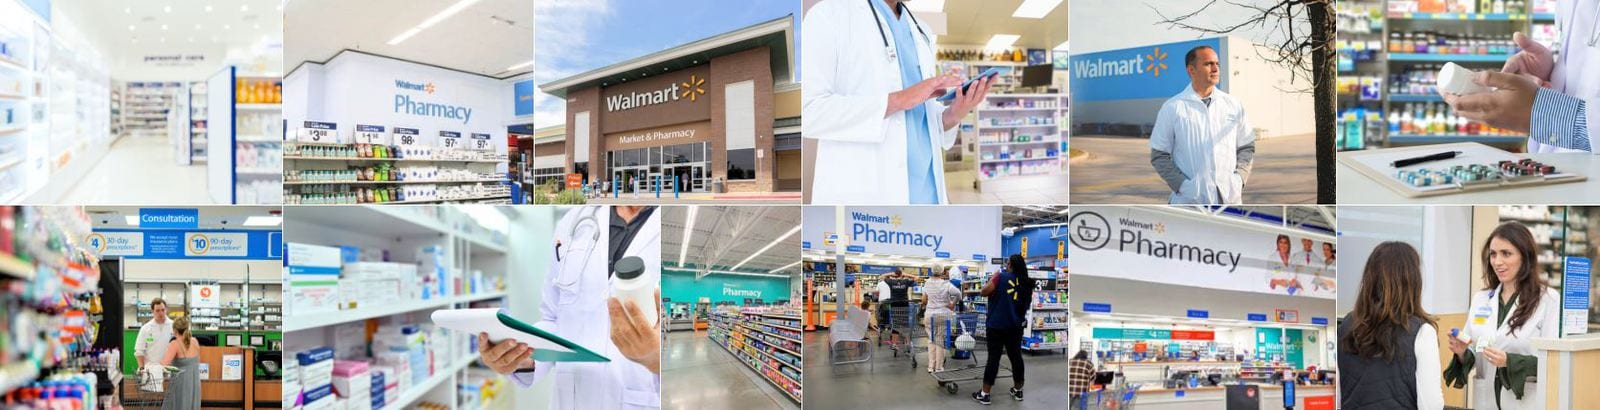 Walmart Pharmacy of Bakersfield